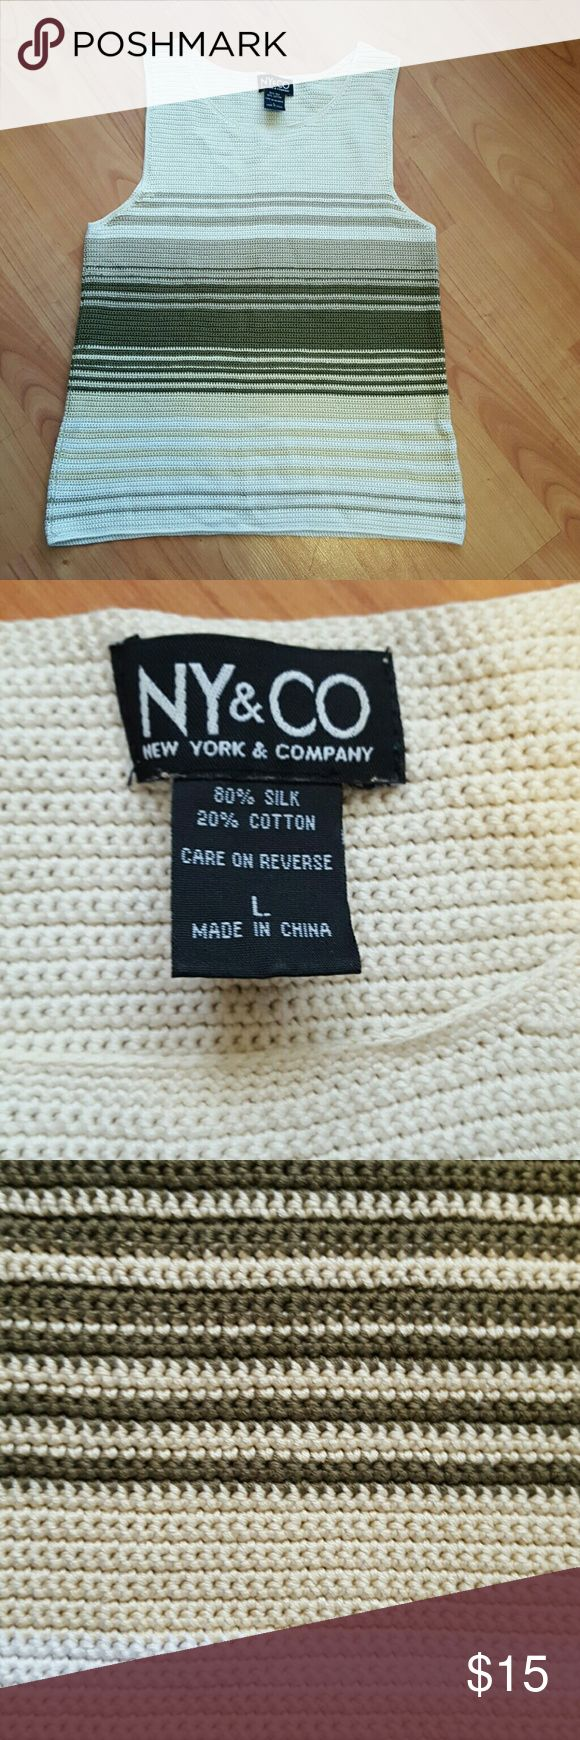 New York & Co sz large silk blend knitted tank top Very beautiful women's top.  Super soft.  Worn once, excellent condition New York & Company Tops Tank Tops